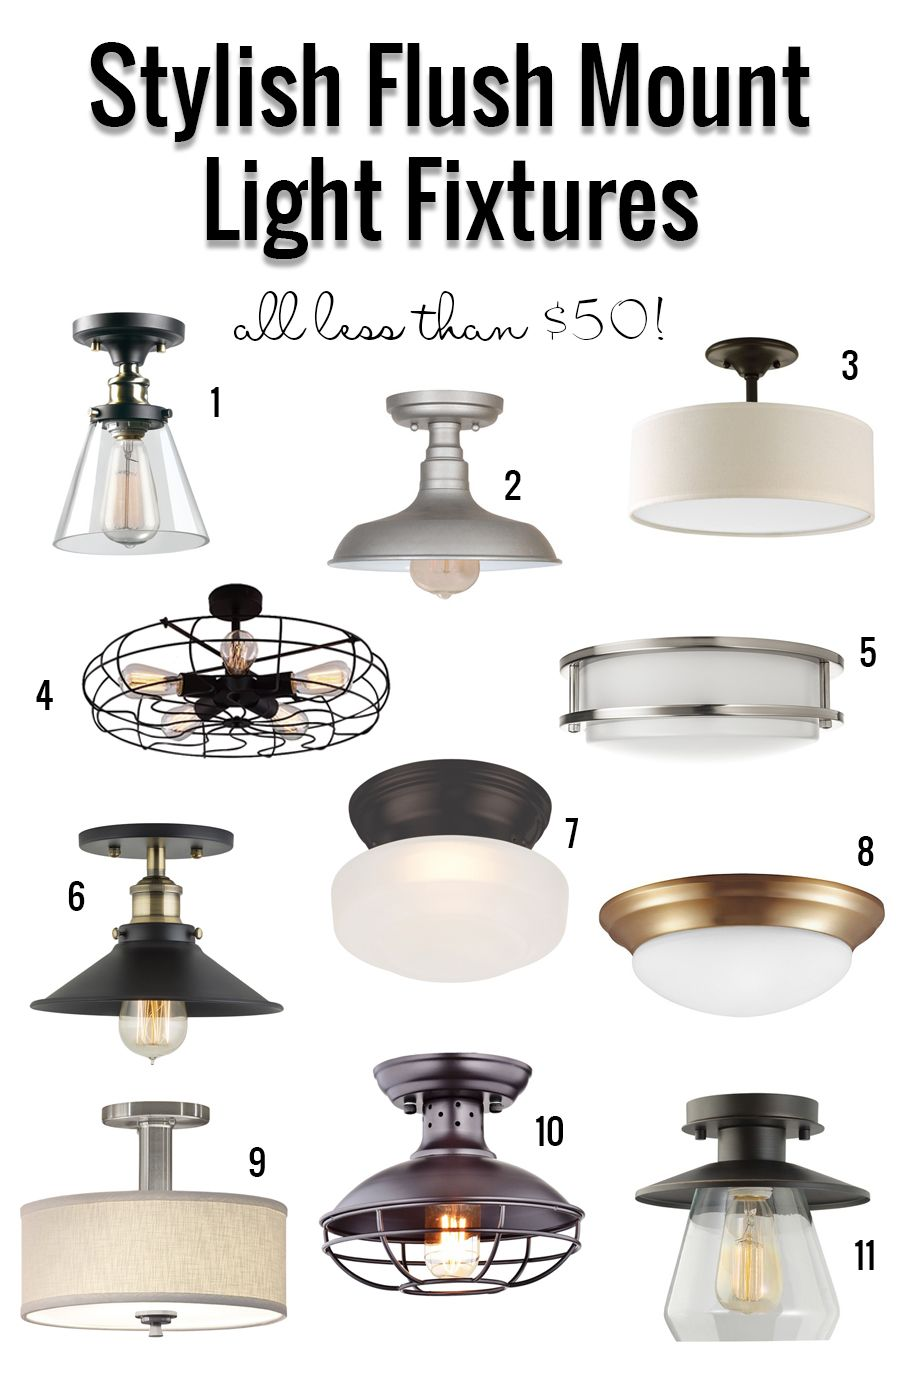 Stylish Flush Mount Light Fixtures Under 50 So Many Great